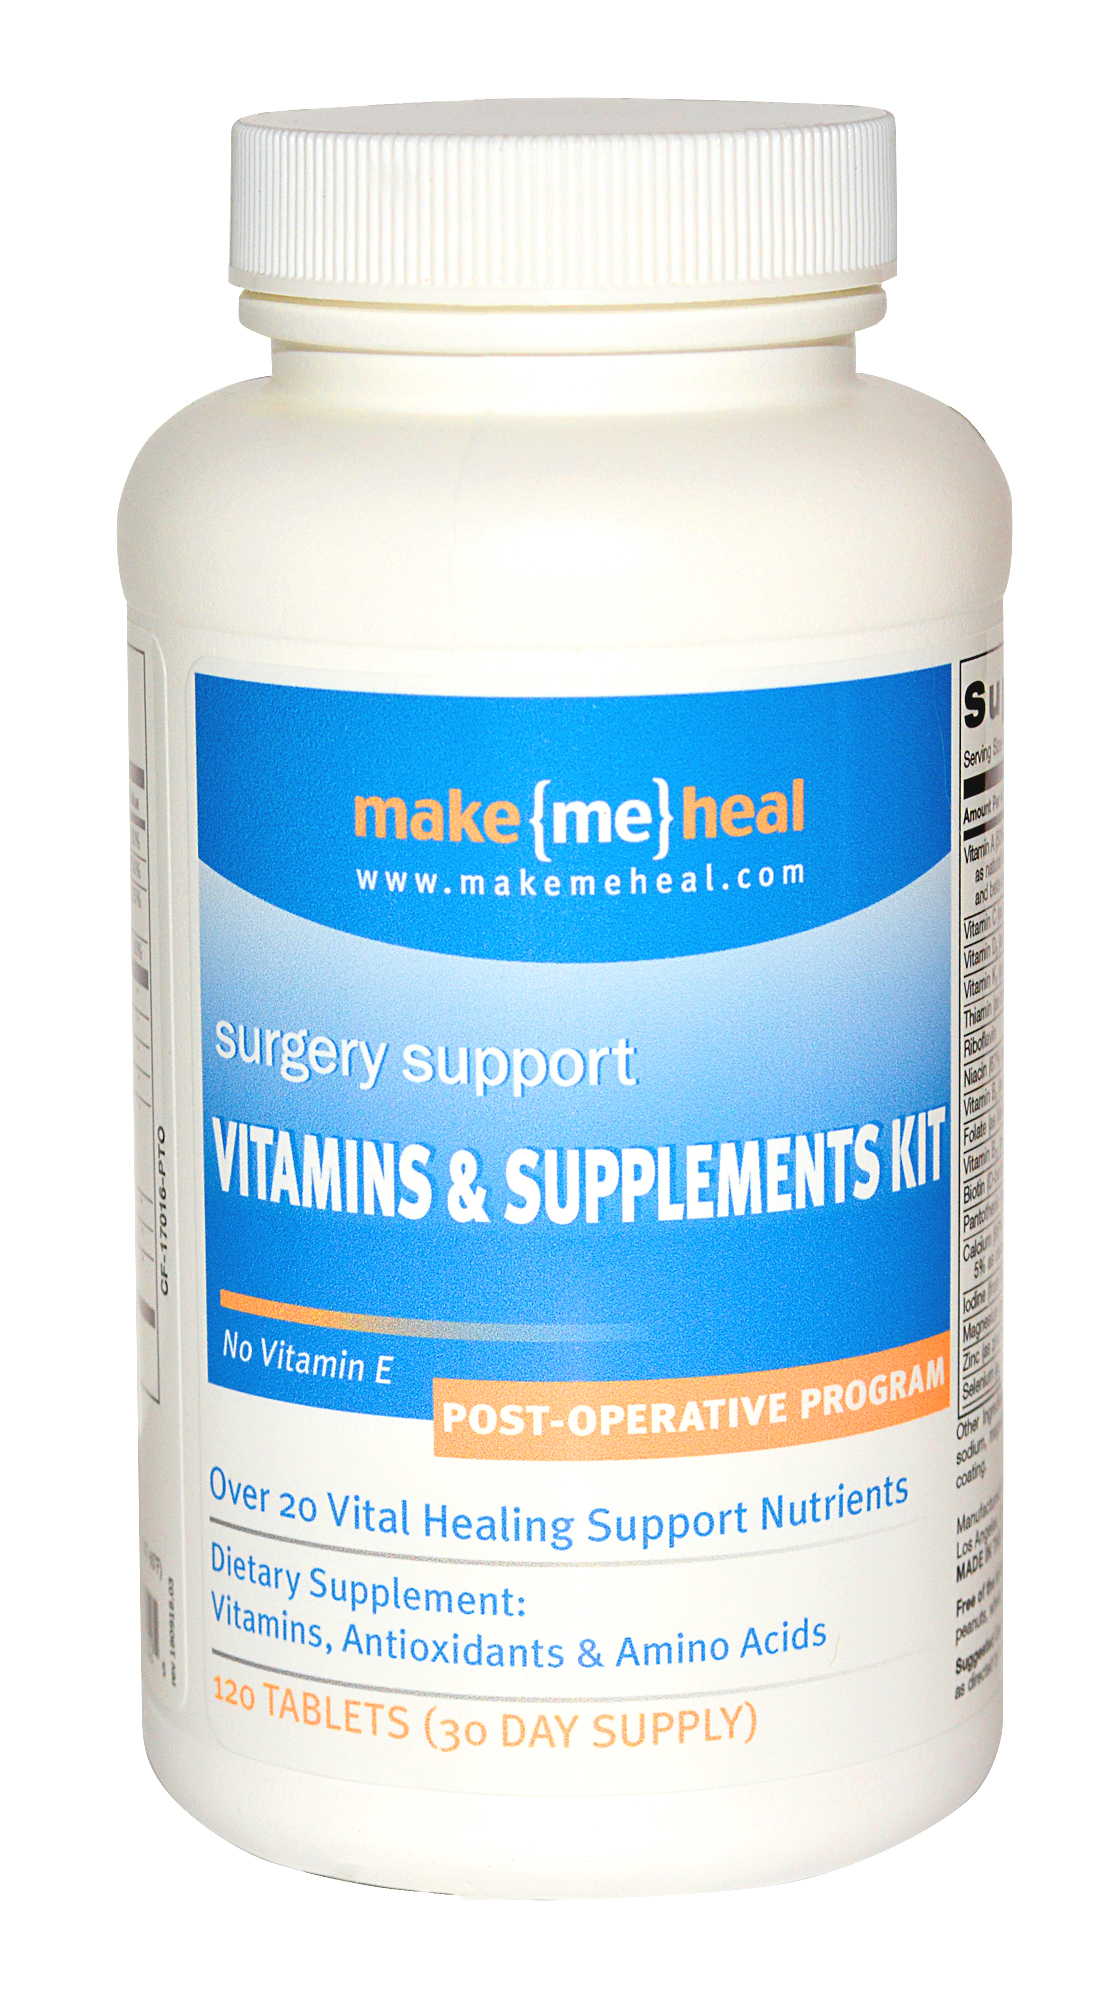 MakeMeHeal Plastic Surgery Healing Supplements & Vitamins - Post-Op Formula (w/Bromelain) - 20 Day